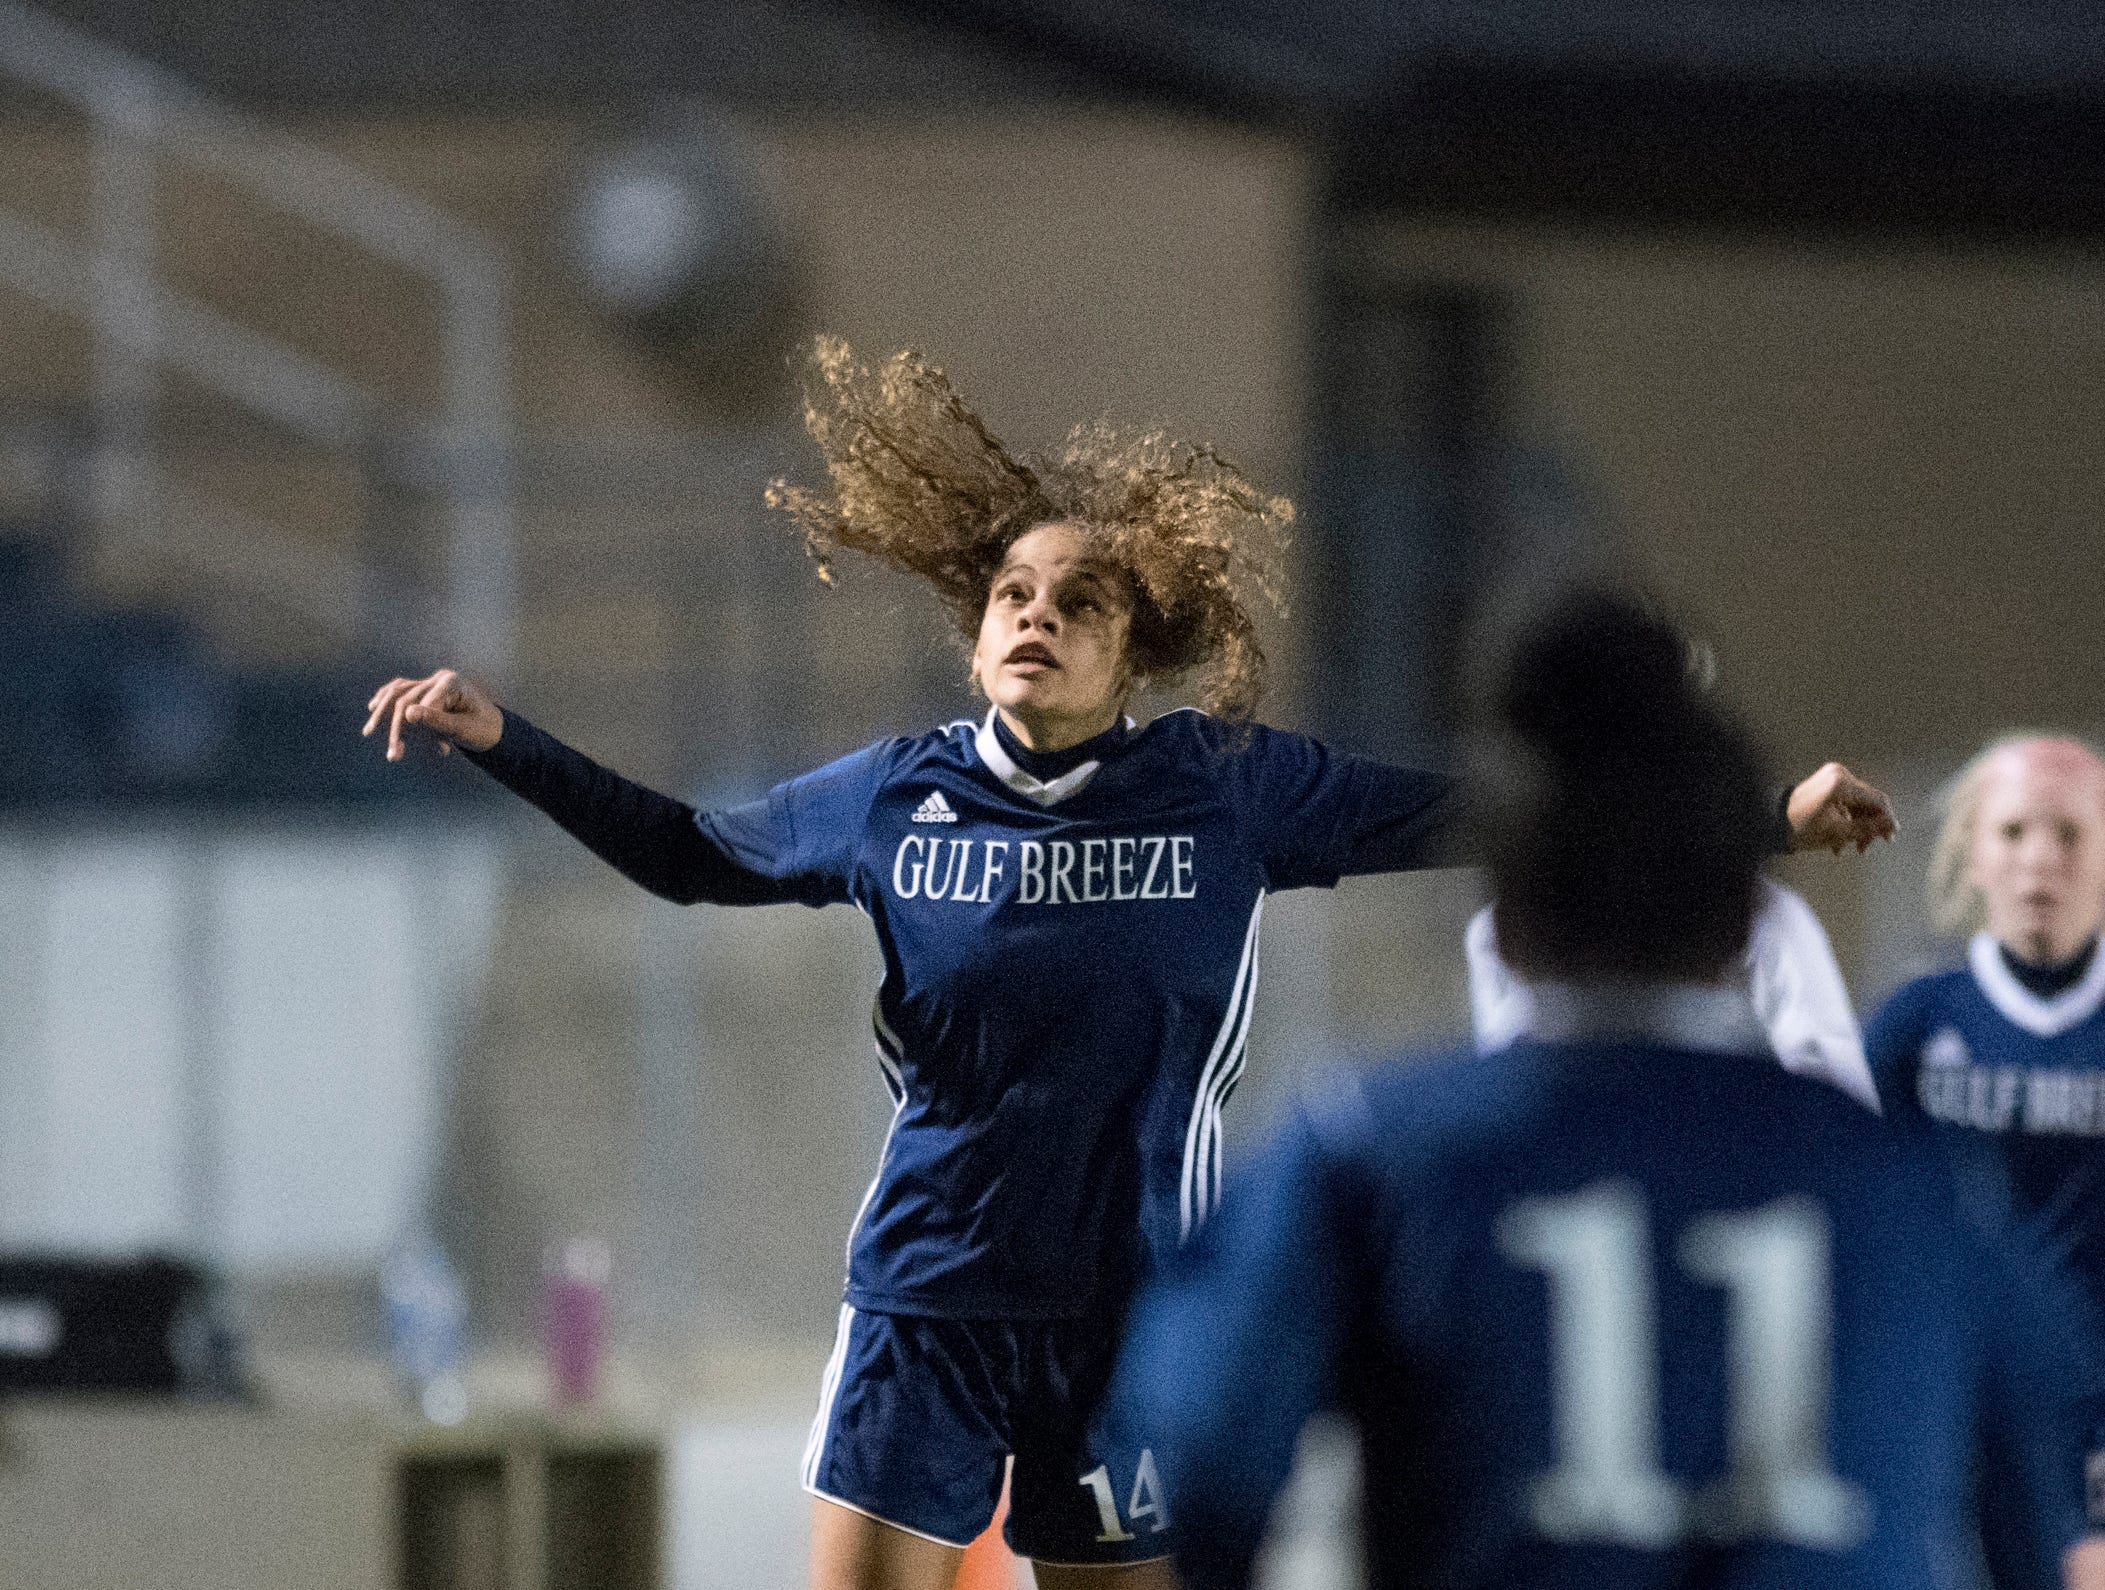 Aiyannah Robinson (14) leaps to head the ball during the Niceville vs Gulf Breeze soccer game at Gulf Breeze High School on Thursday, January 10, 2019.